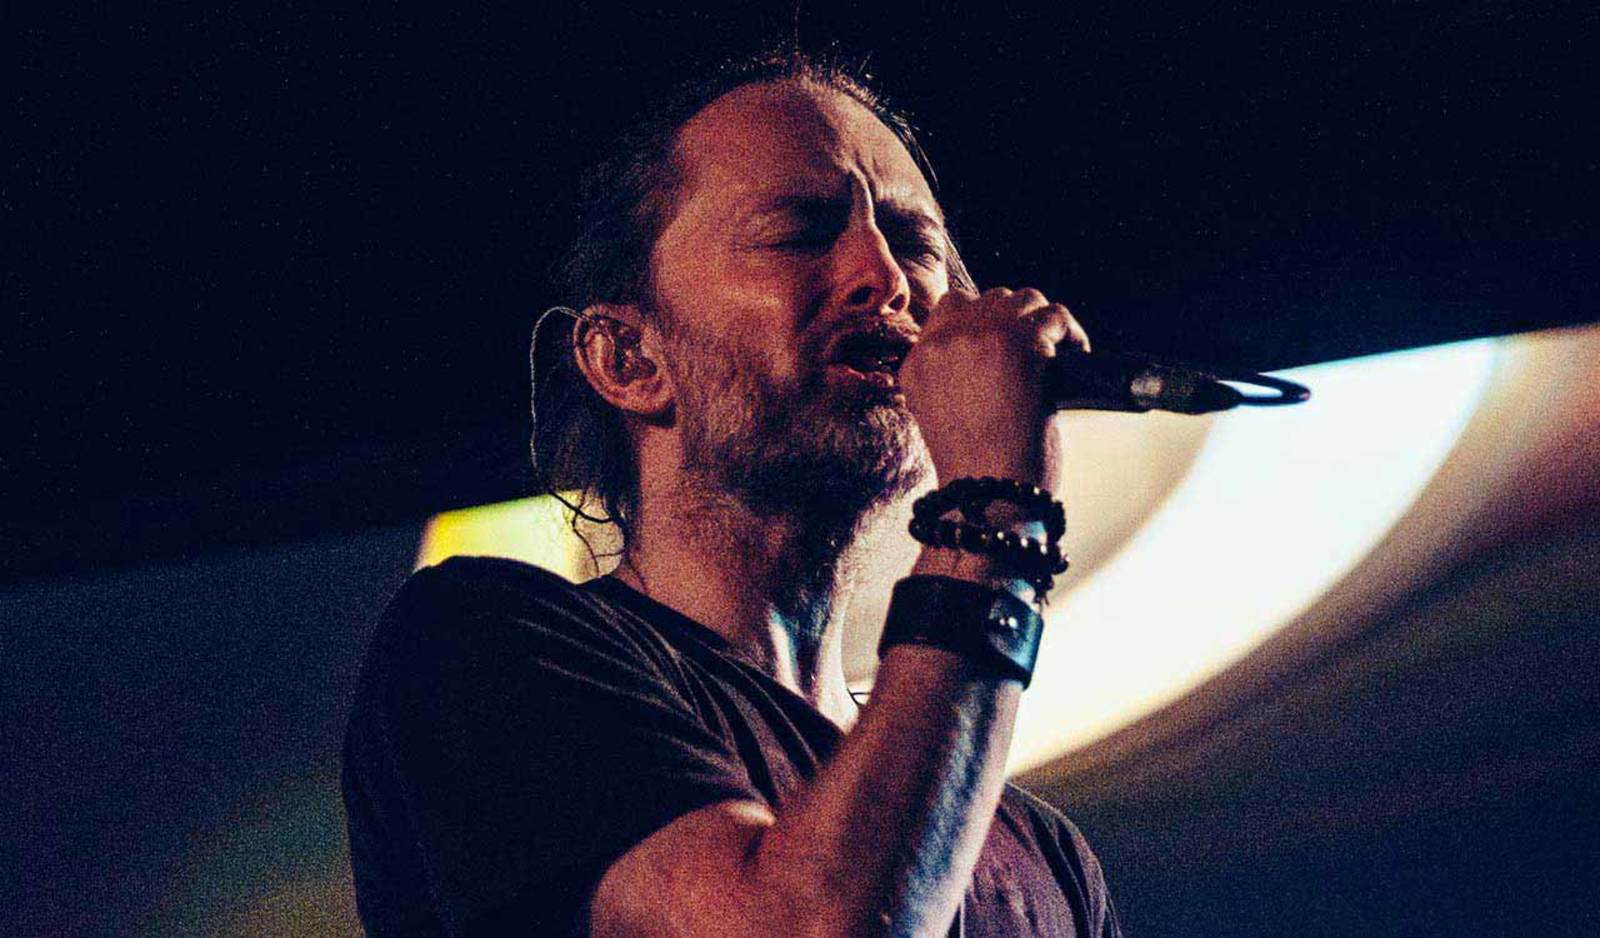 """Thom Yorke shares final single """"Unmade"""" from, his soundtrack for the Luca Guadagnino Film 'Suspiria' out October 26th via XL Recordings."""